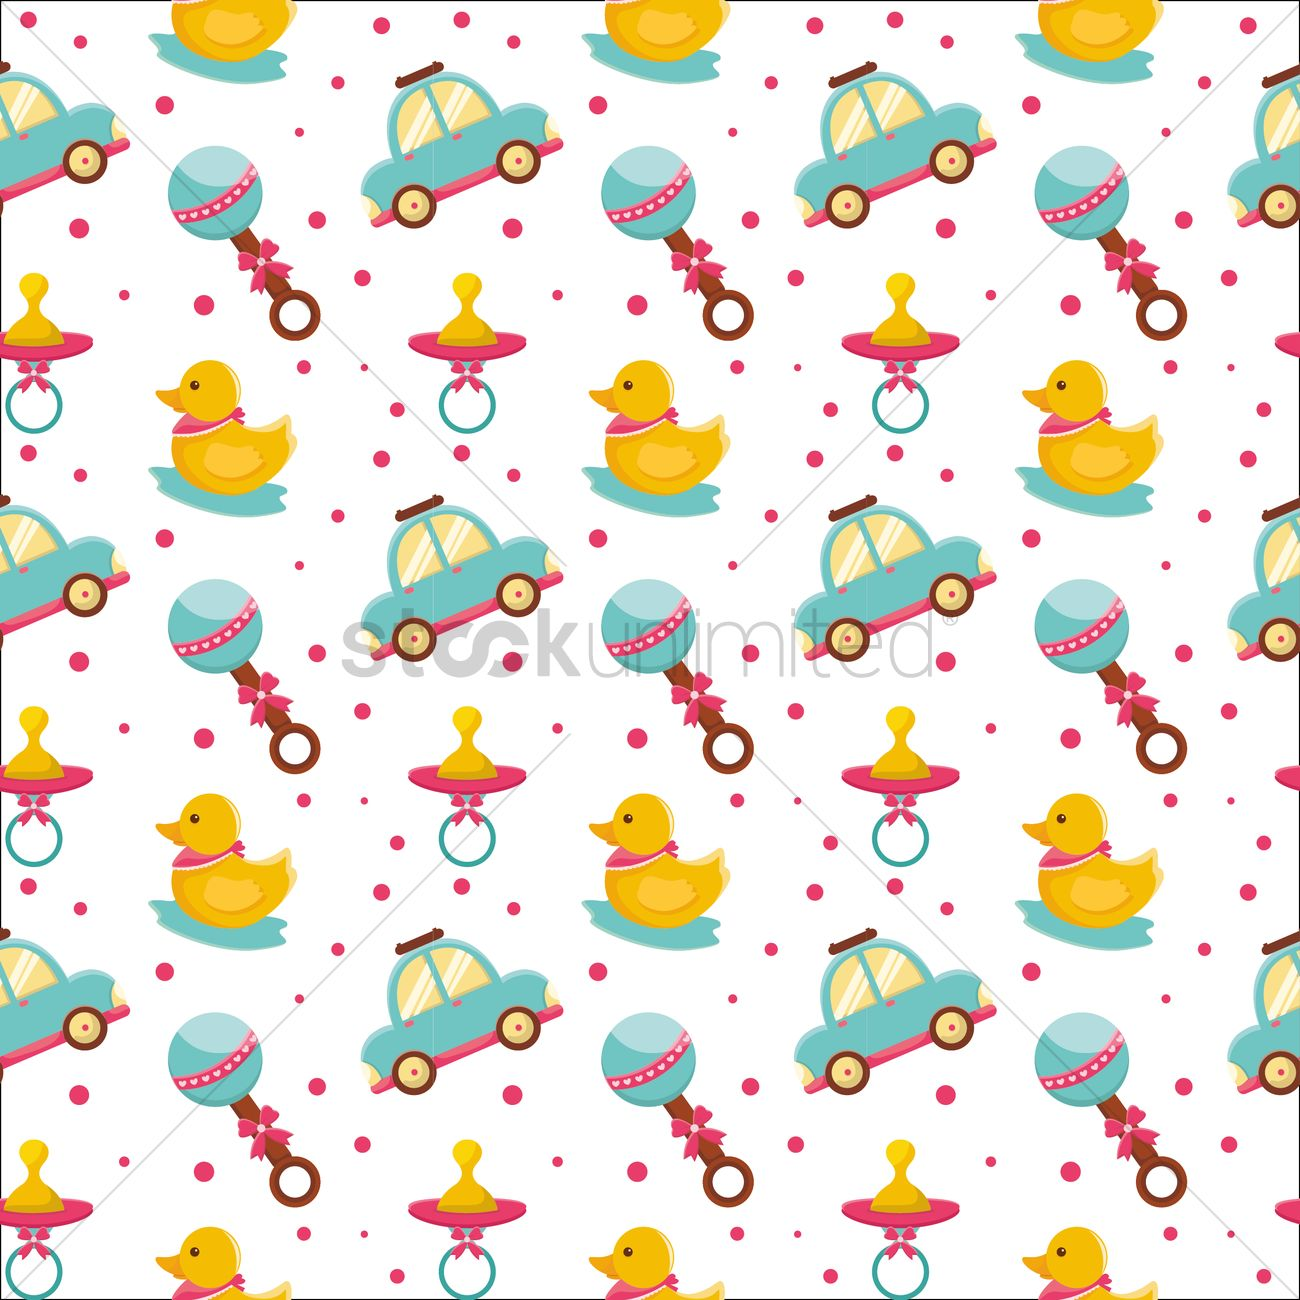 Free Baby Toys Background Vector Image 1293138 Stockunlimited